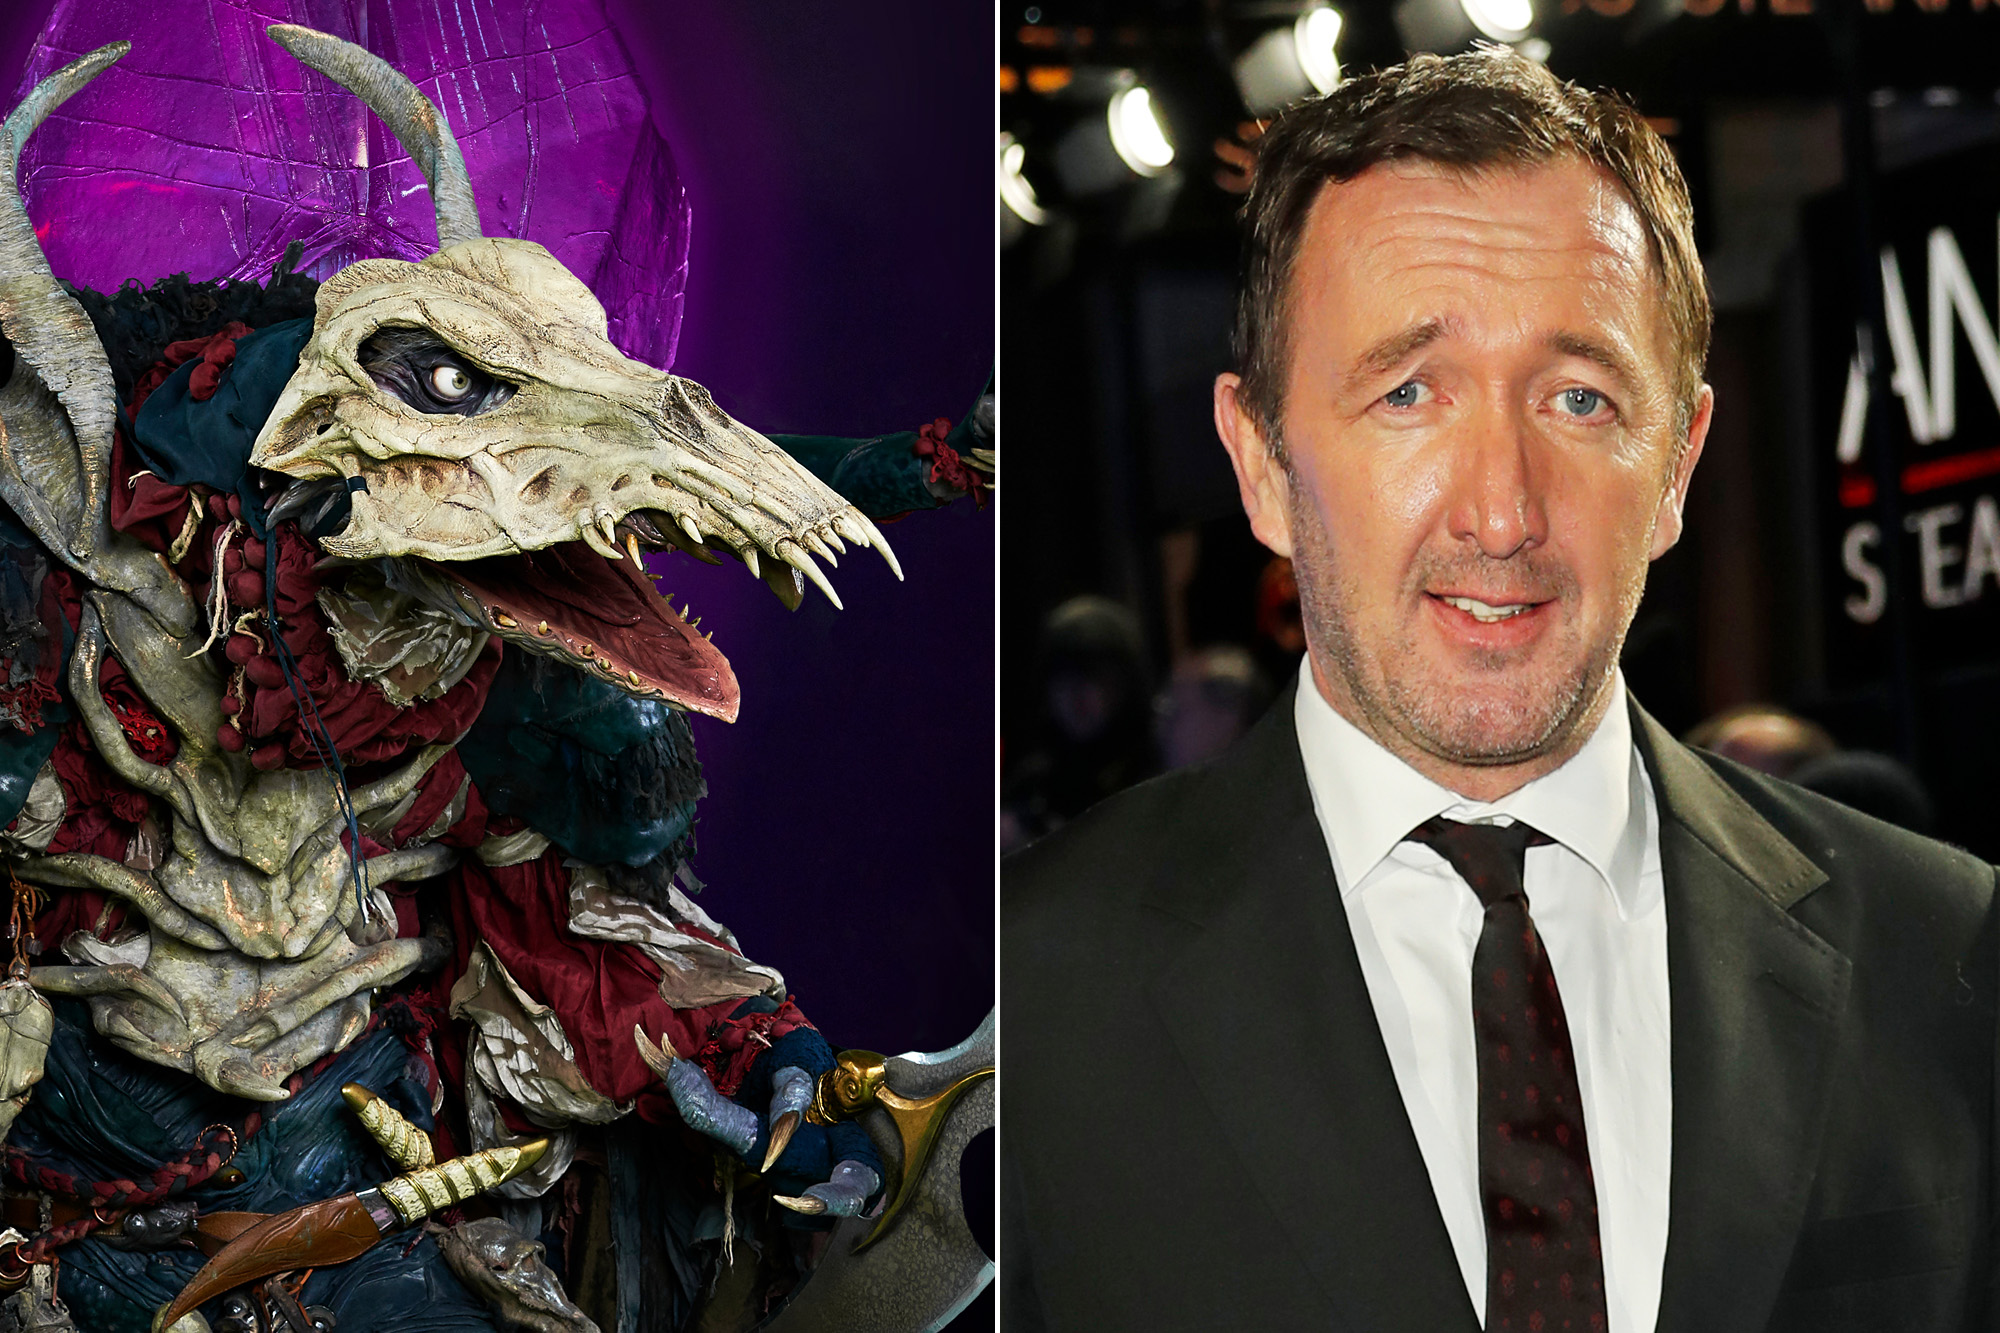 Ralph Ineson as The Hunter